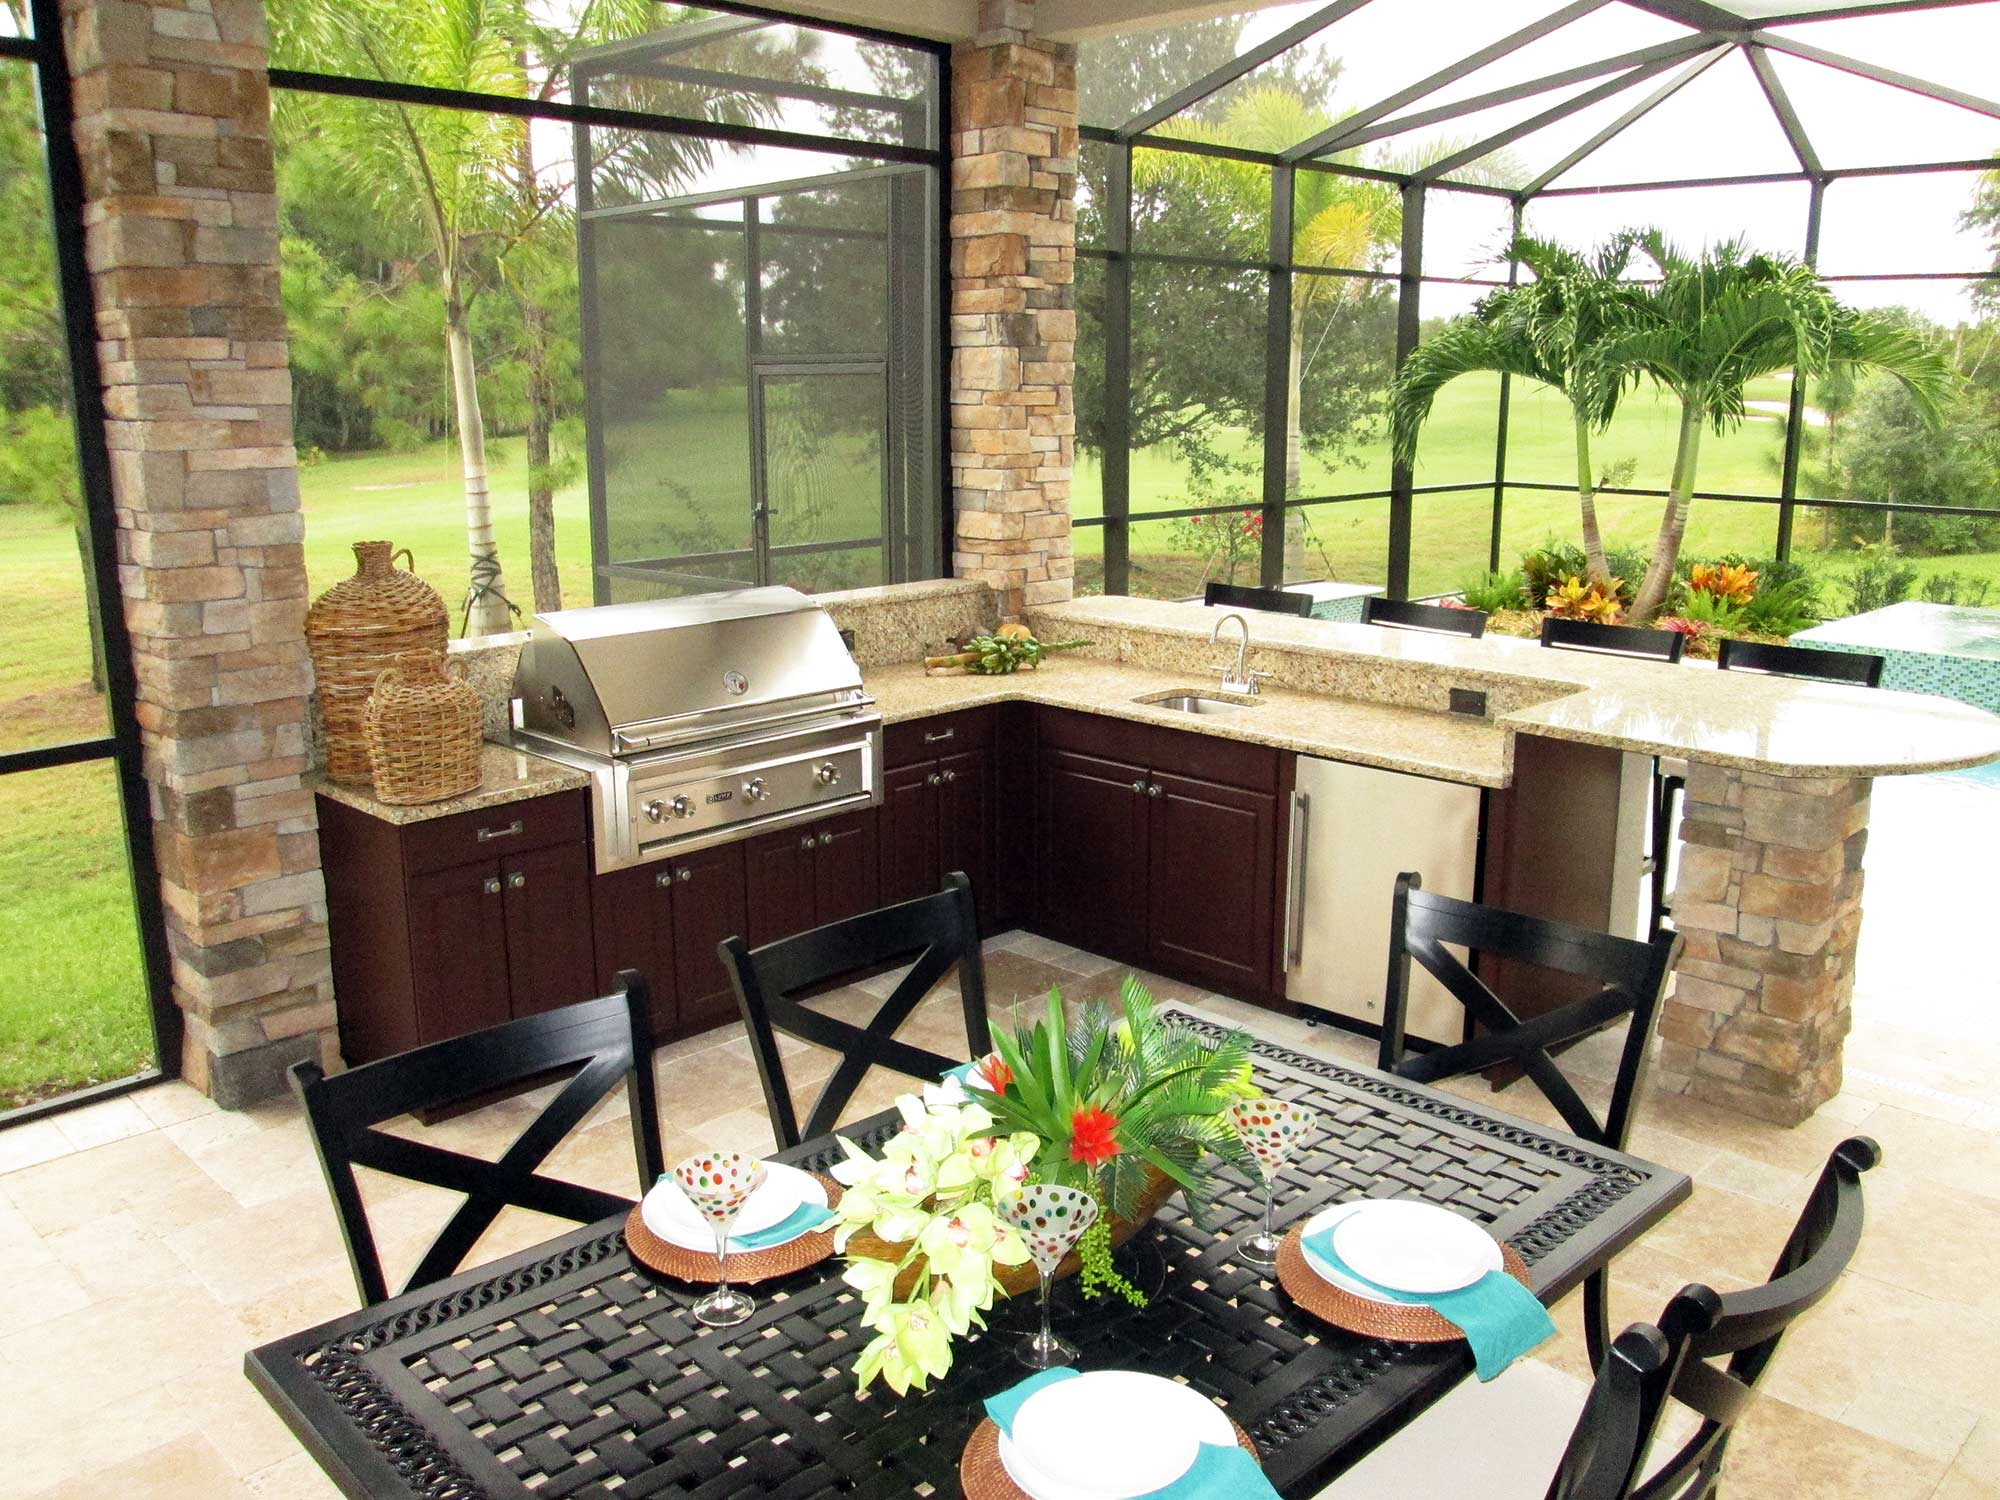 Outdoor Kitchen Cabinets More Quality Outdoor Kitchen Cabinets Grills Fireplaces And More